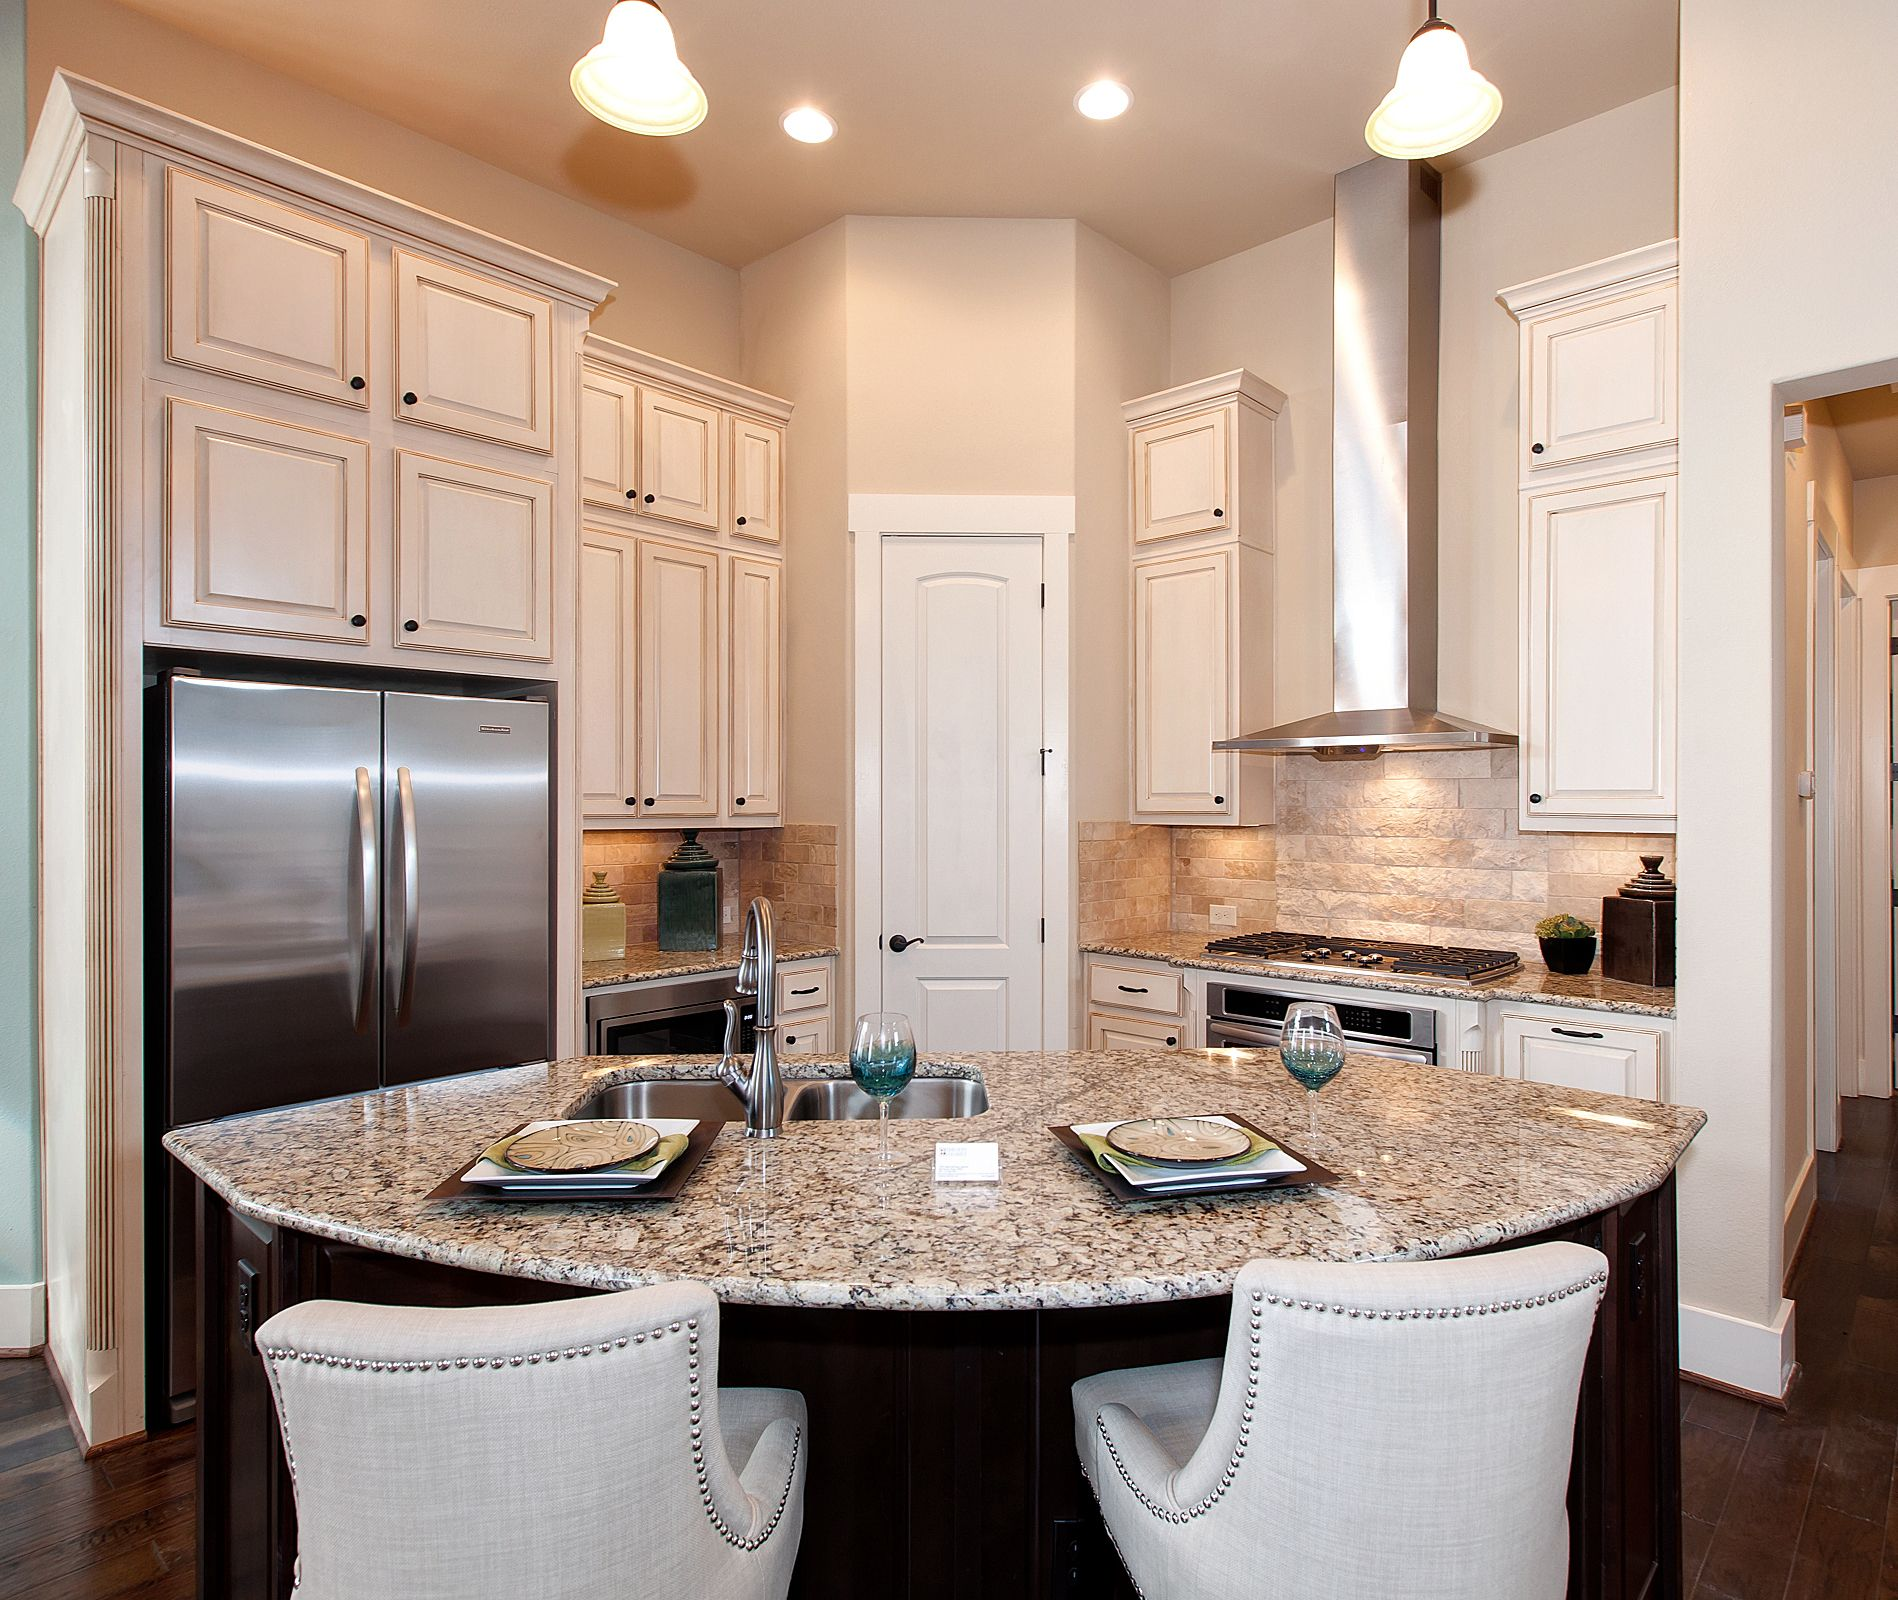 Find This Pin And More On Brohn Homes San Antonio.